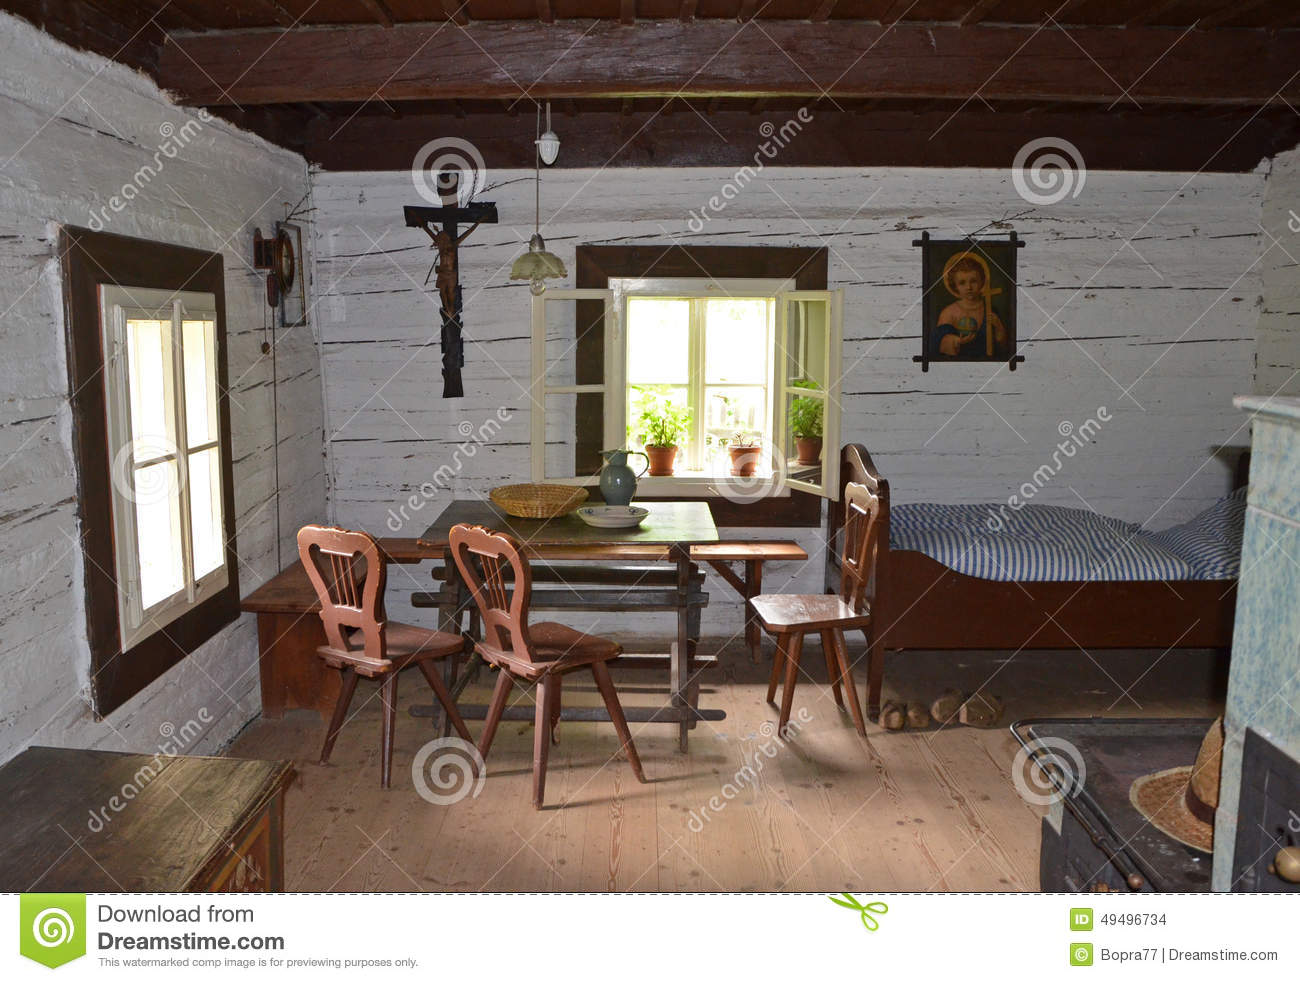 Kourim may 24 interior of traditional village house for Traditional house interior